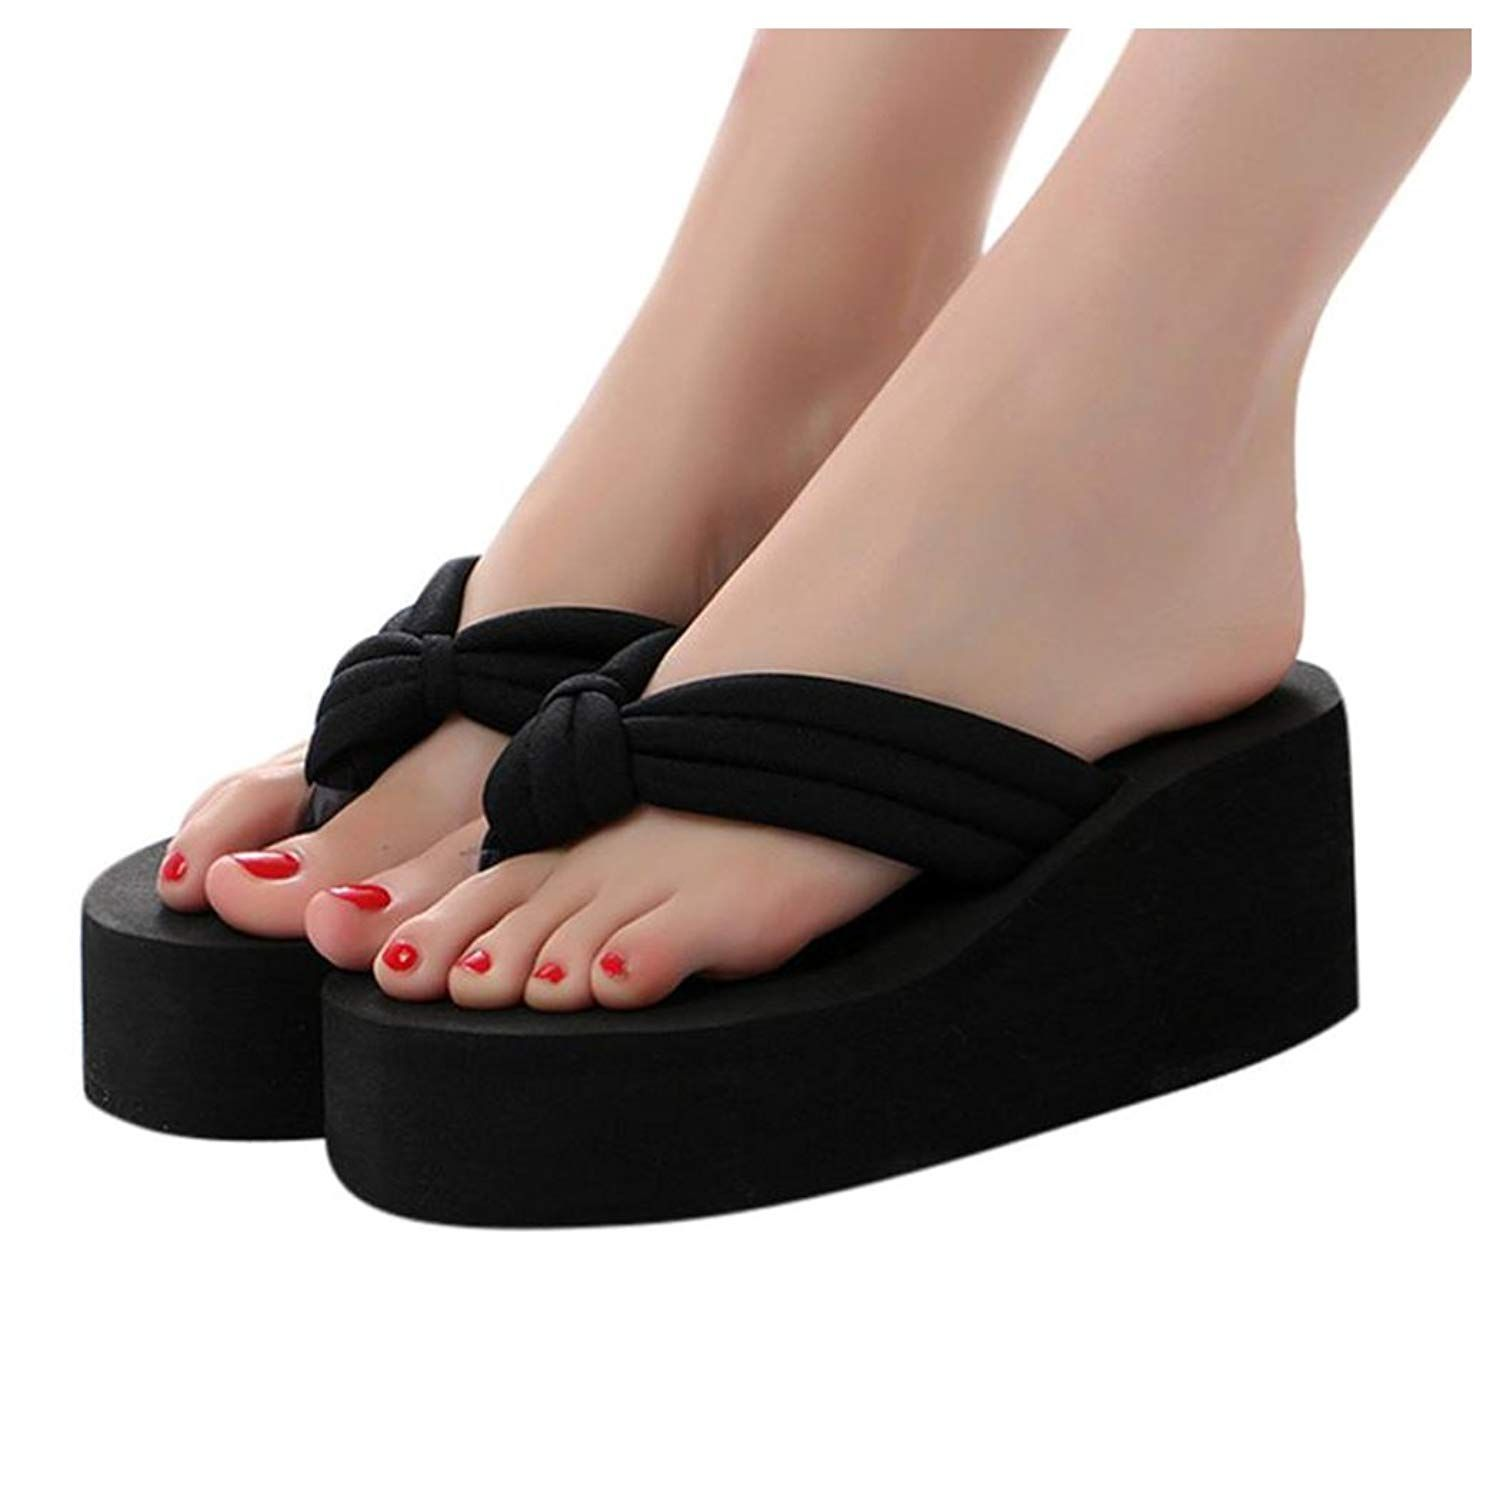 b850f51203c803 Inkach Womens Flip-Flops    Fashion Summer Chunky Heeled Wedge Sandals Thong  Slippers Beach Platform Shoes    Very nice of your presence to have dropped  by ...